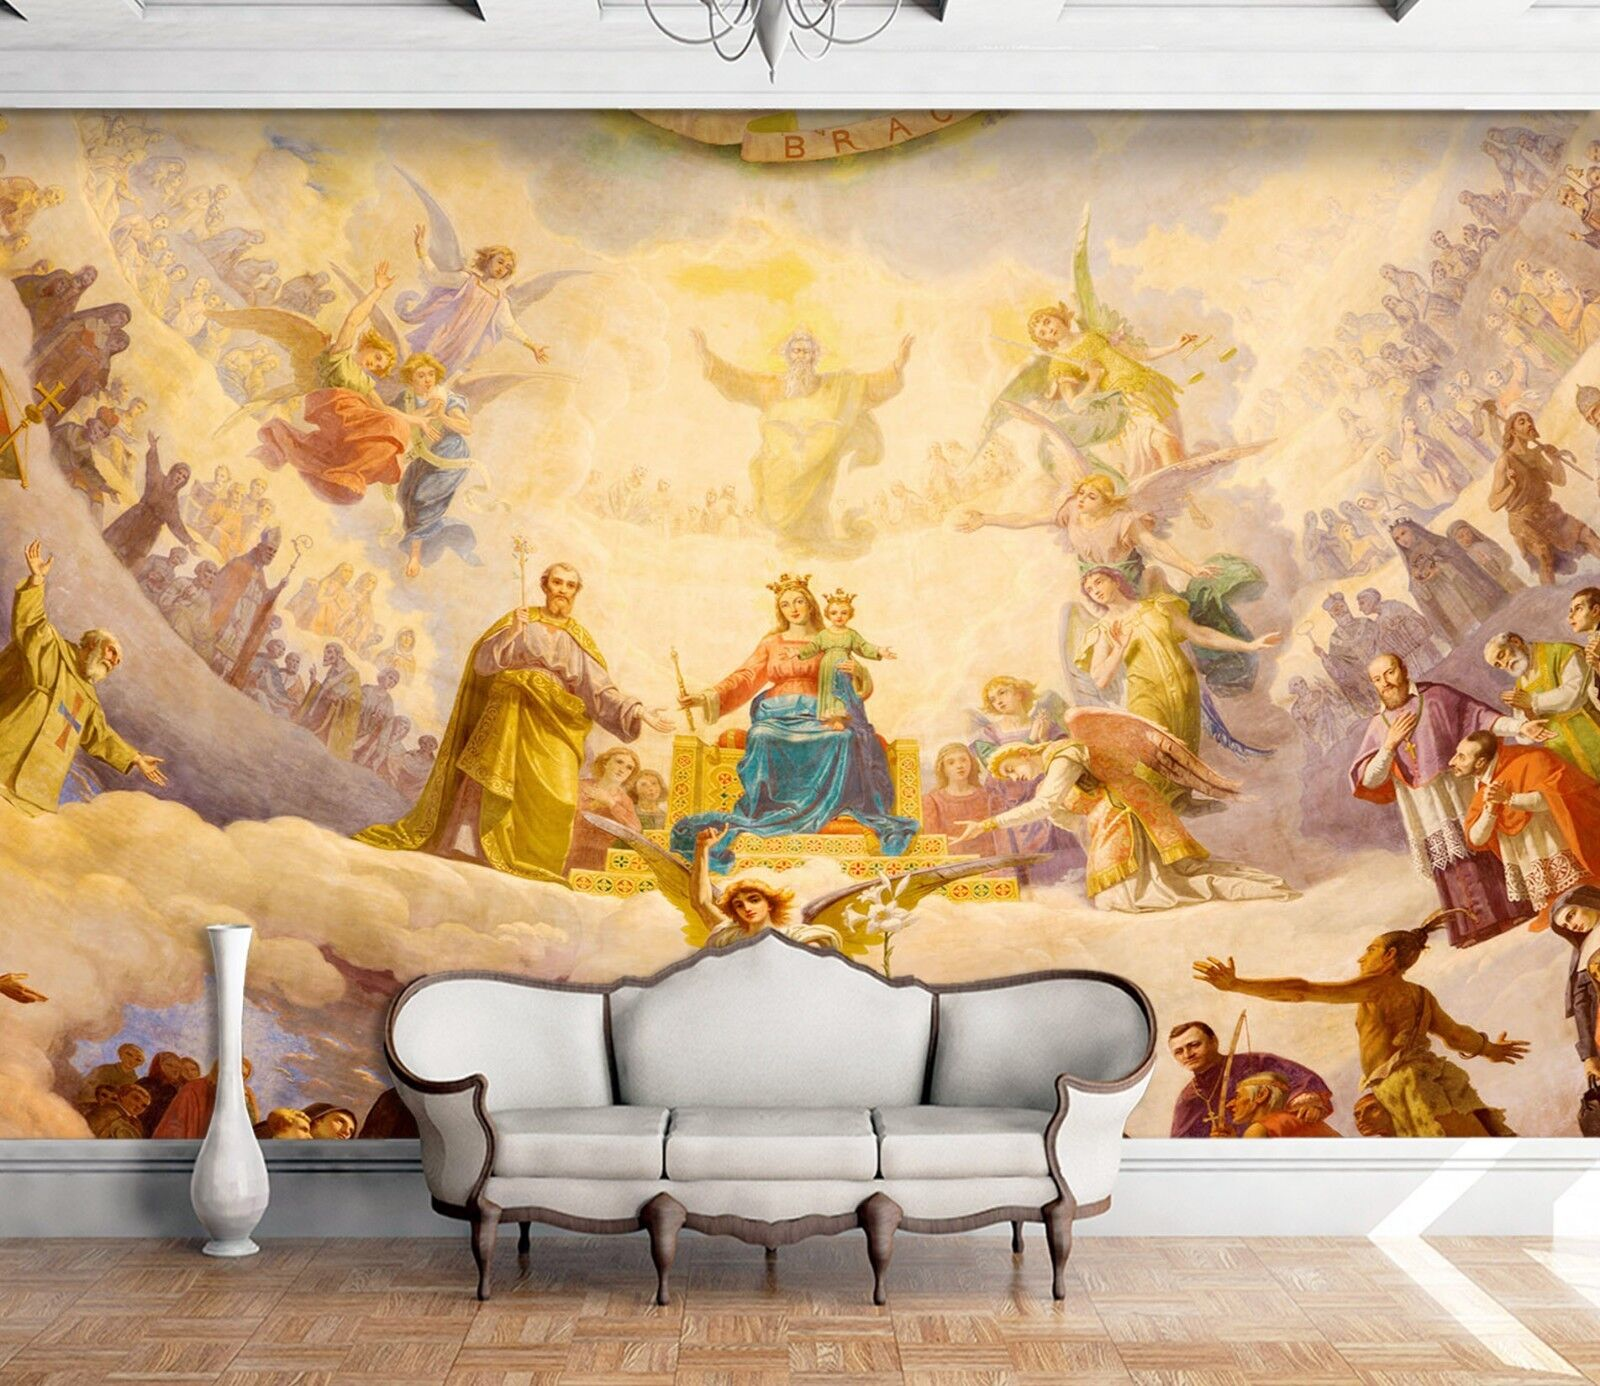 3D Palaces Many Angels 5 Wall Paper wall Print Decal Wall Deco Indoor wall Mural